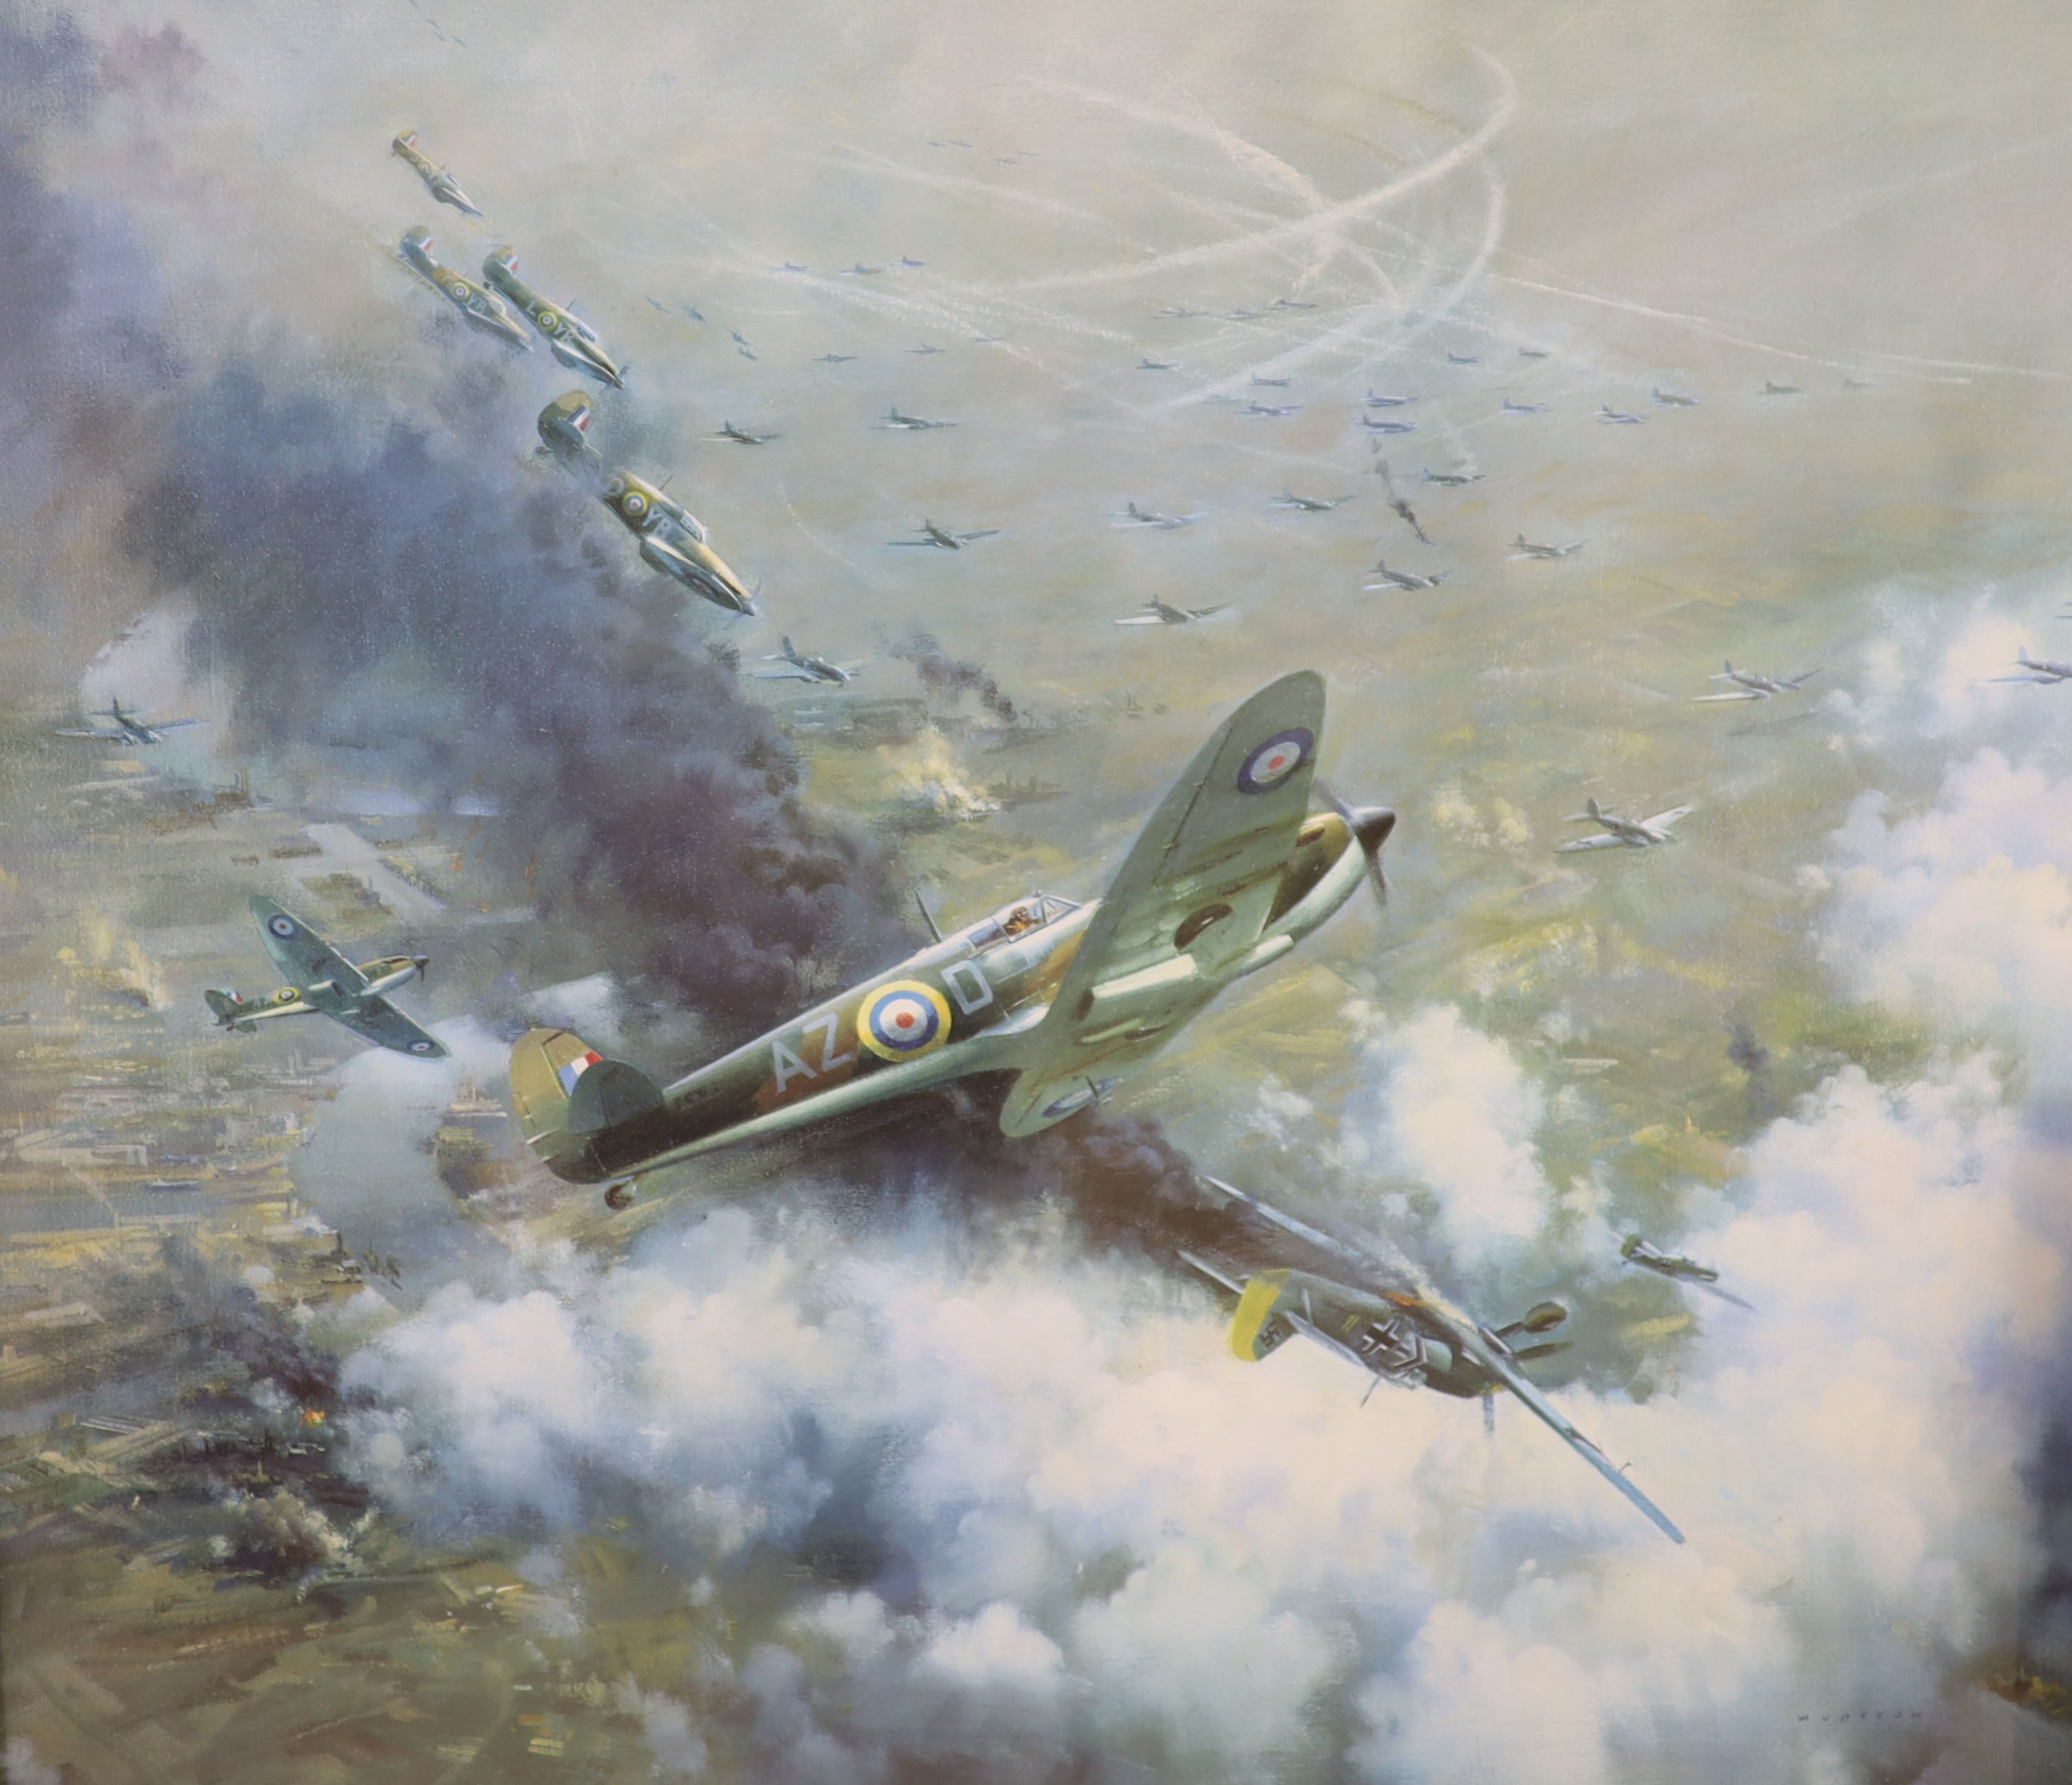 After Frank Wootton, limited edition coloured print, 'Battle Over London 1940', signed in pencil - Image 3 of 4